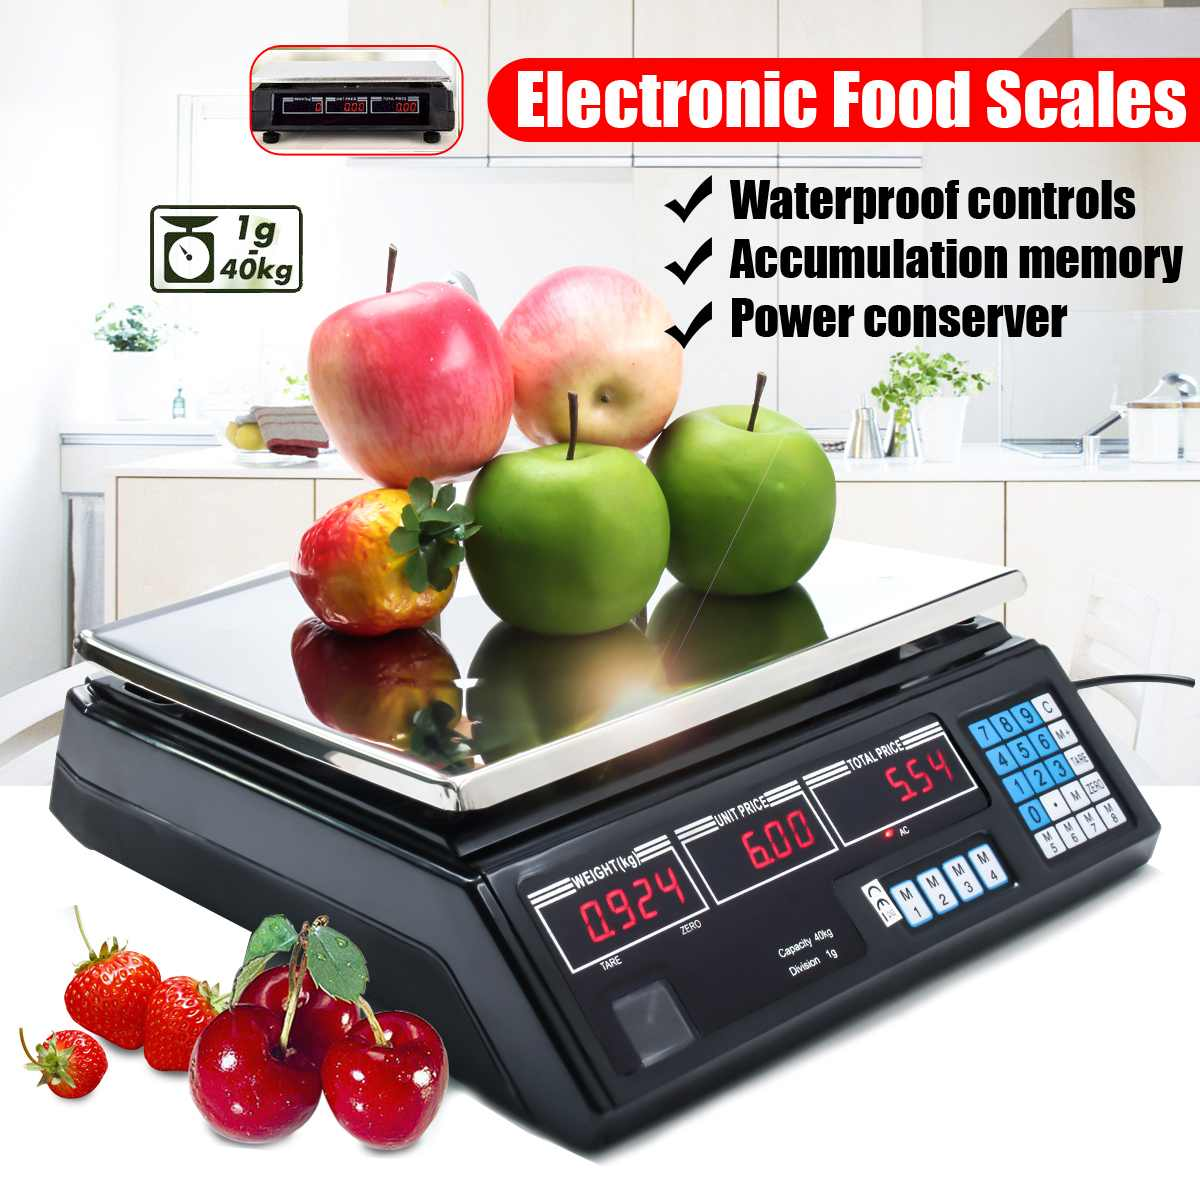 40kg Max Weight Portable Kitchen Digital Food Scale LCD Electronic Weight Food Scales Waterproof For Commercial Shop